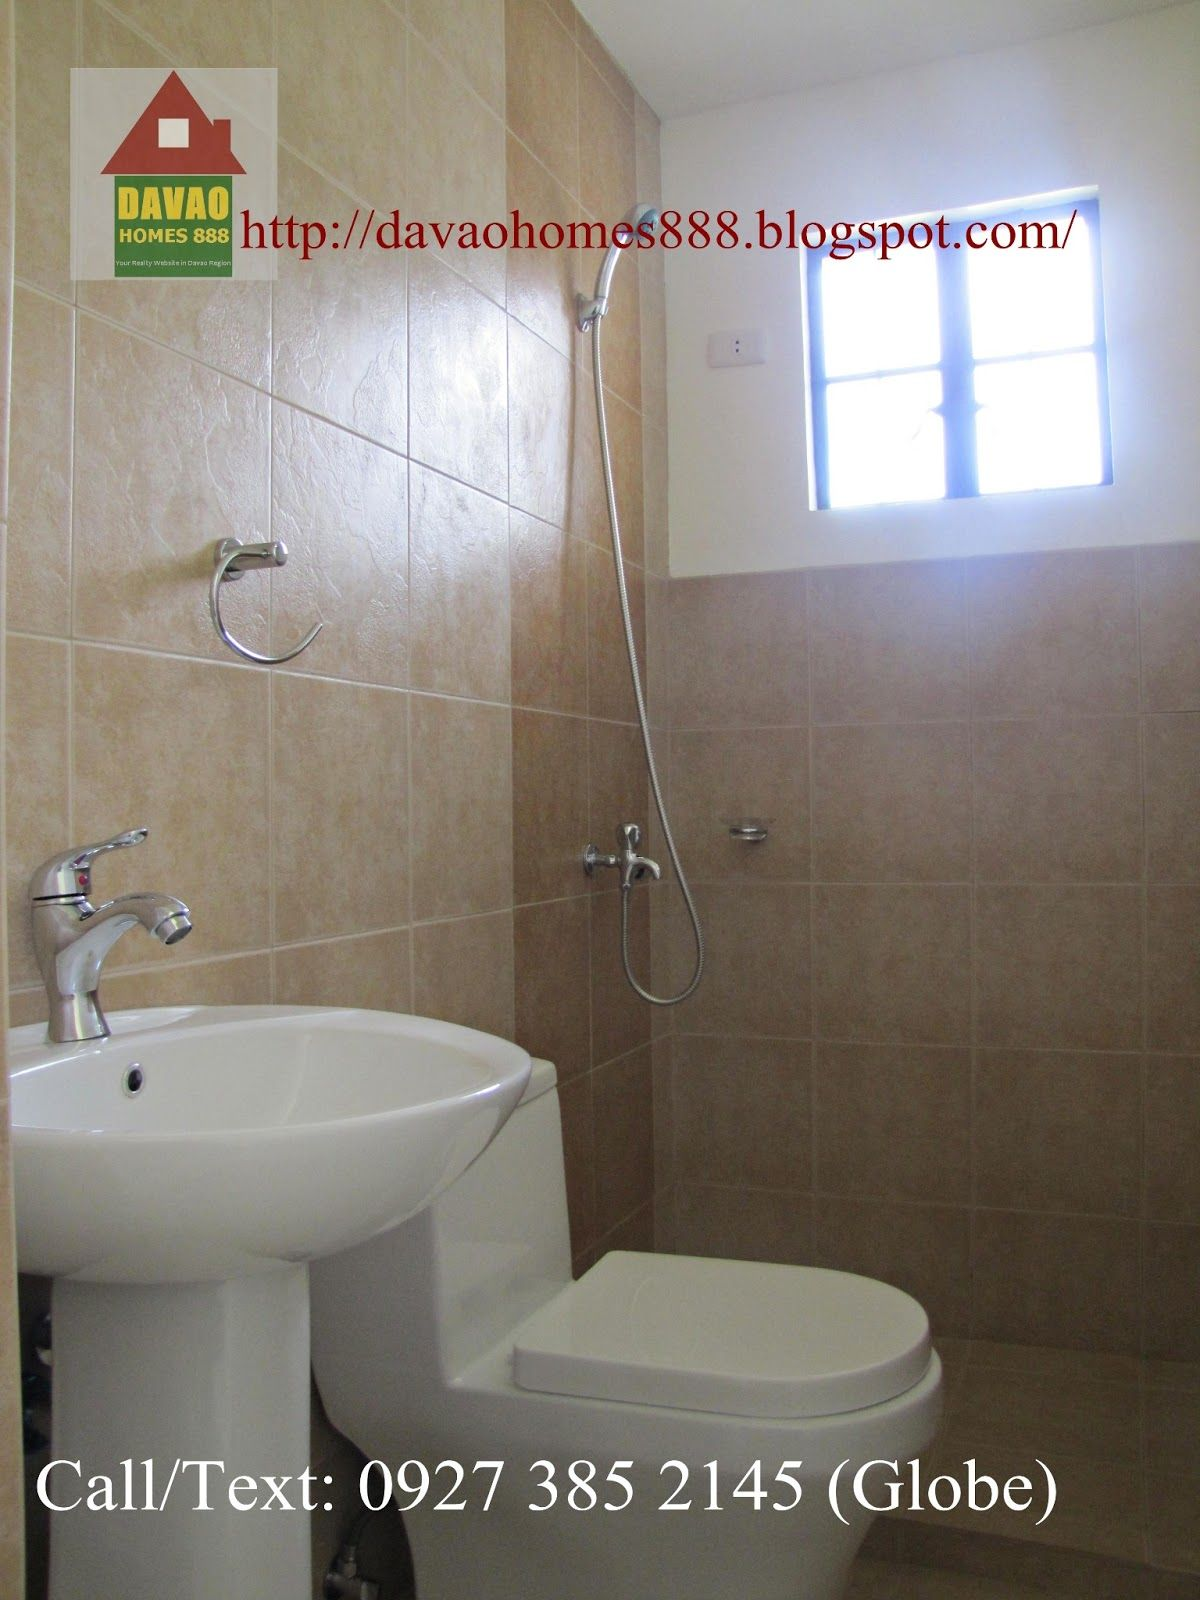 Bathroom Tiles Design Philippines floor tiles philippines price list | annie's home & country